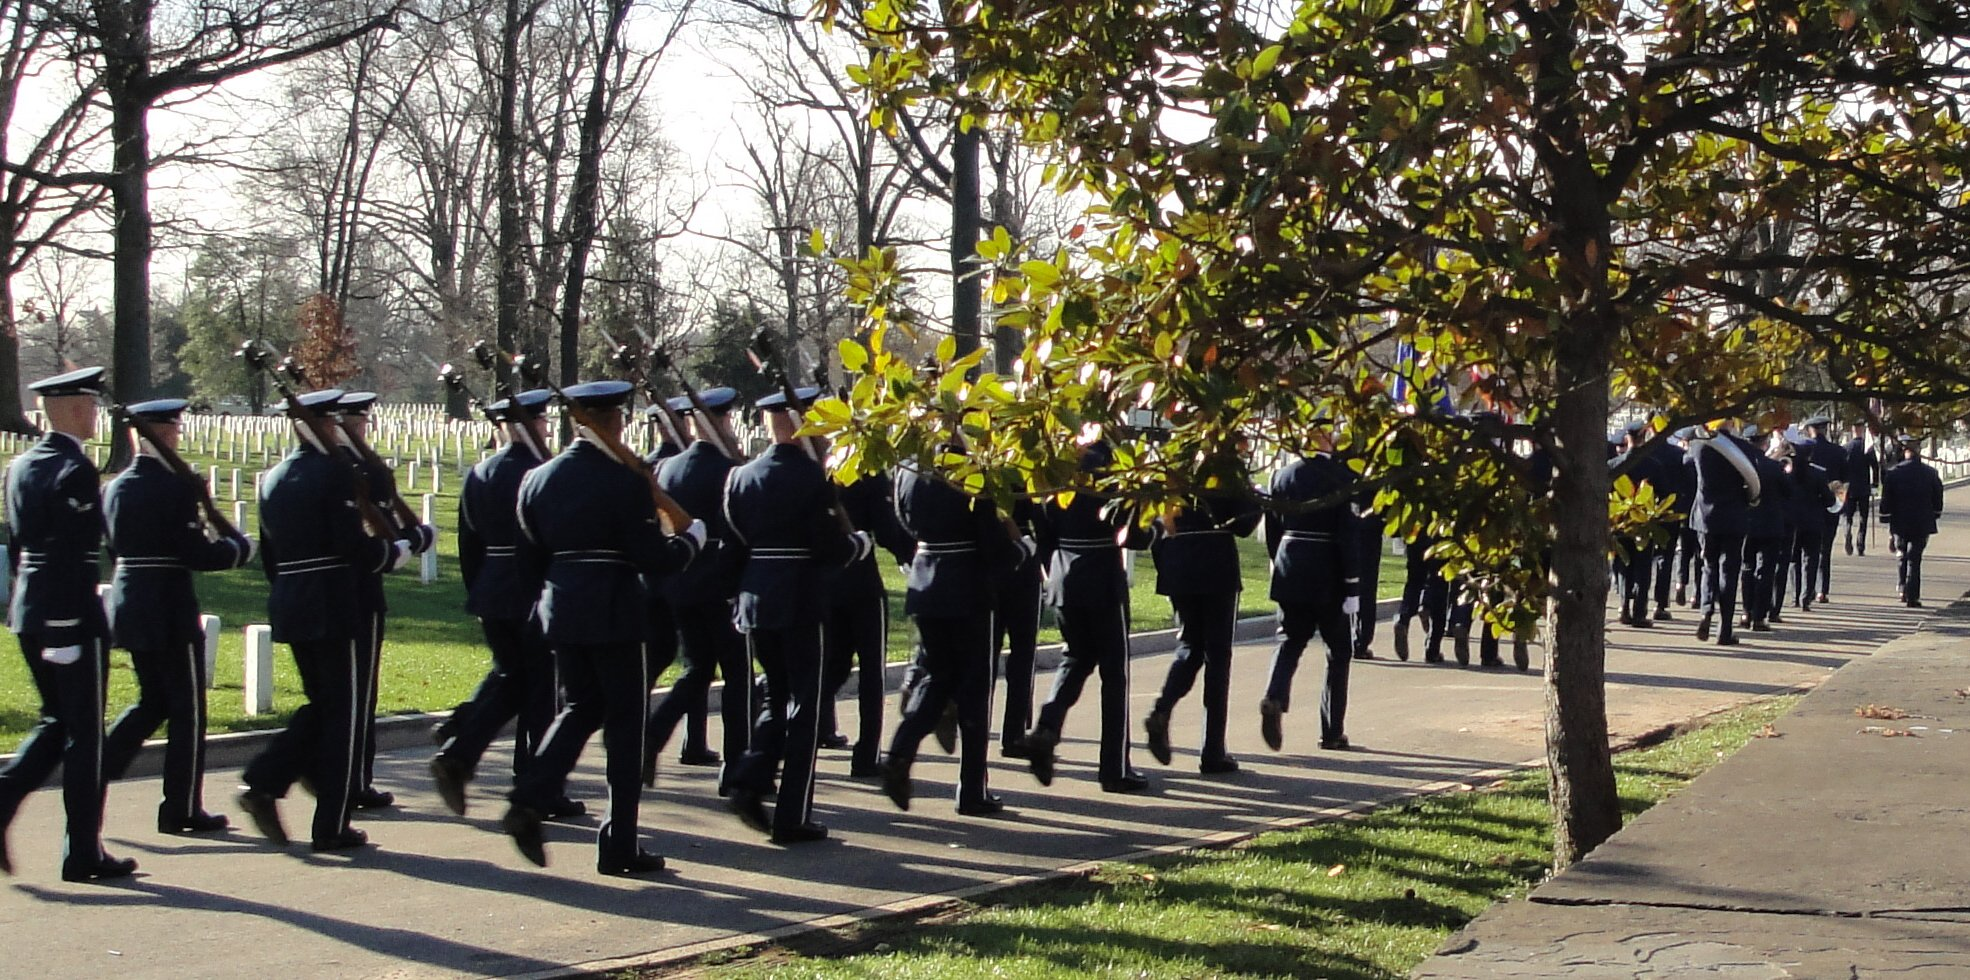 Marching band at Arlington Cemetary